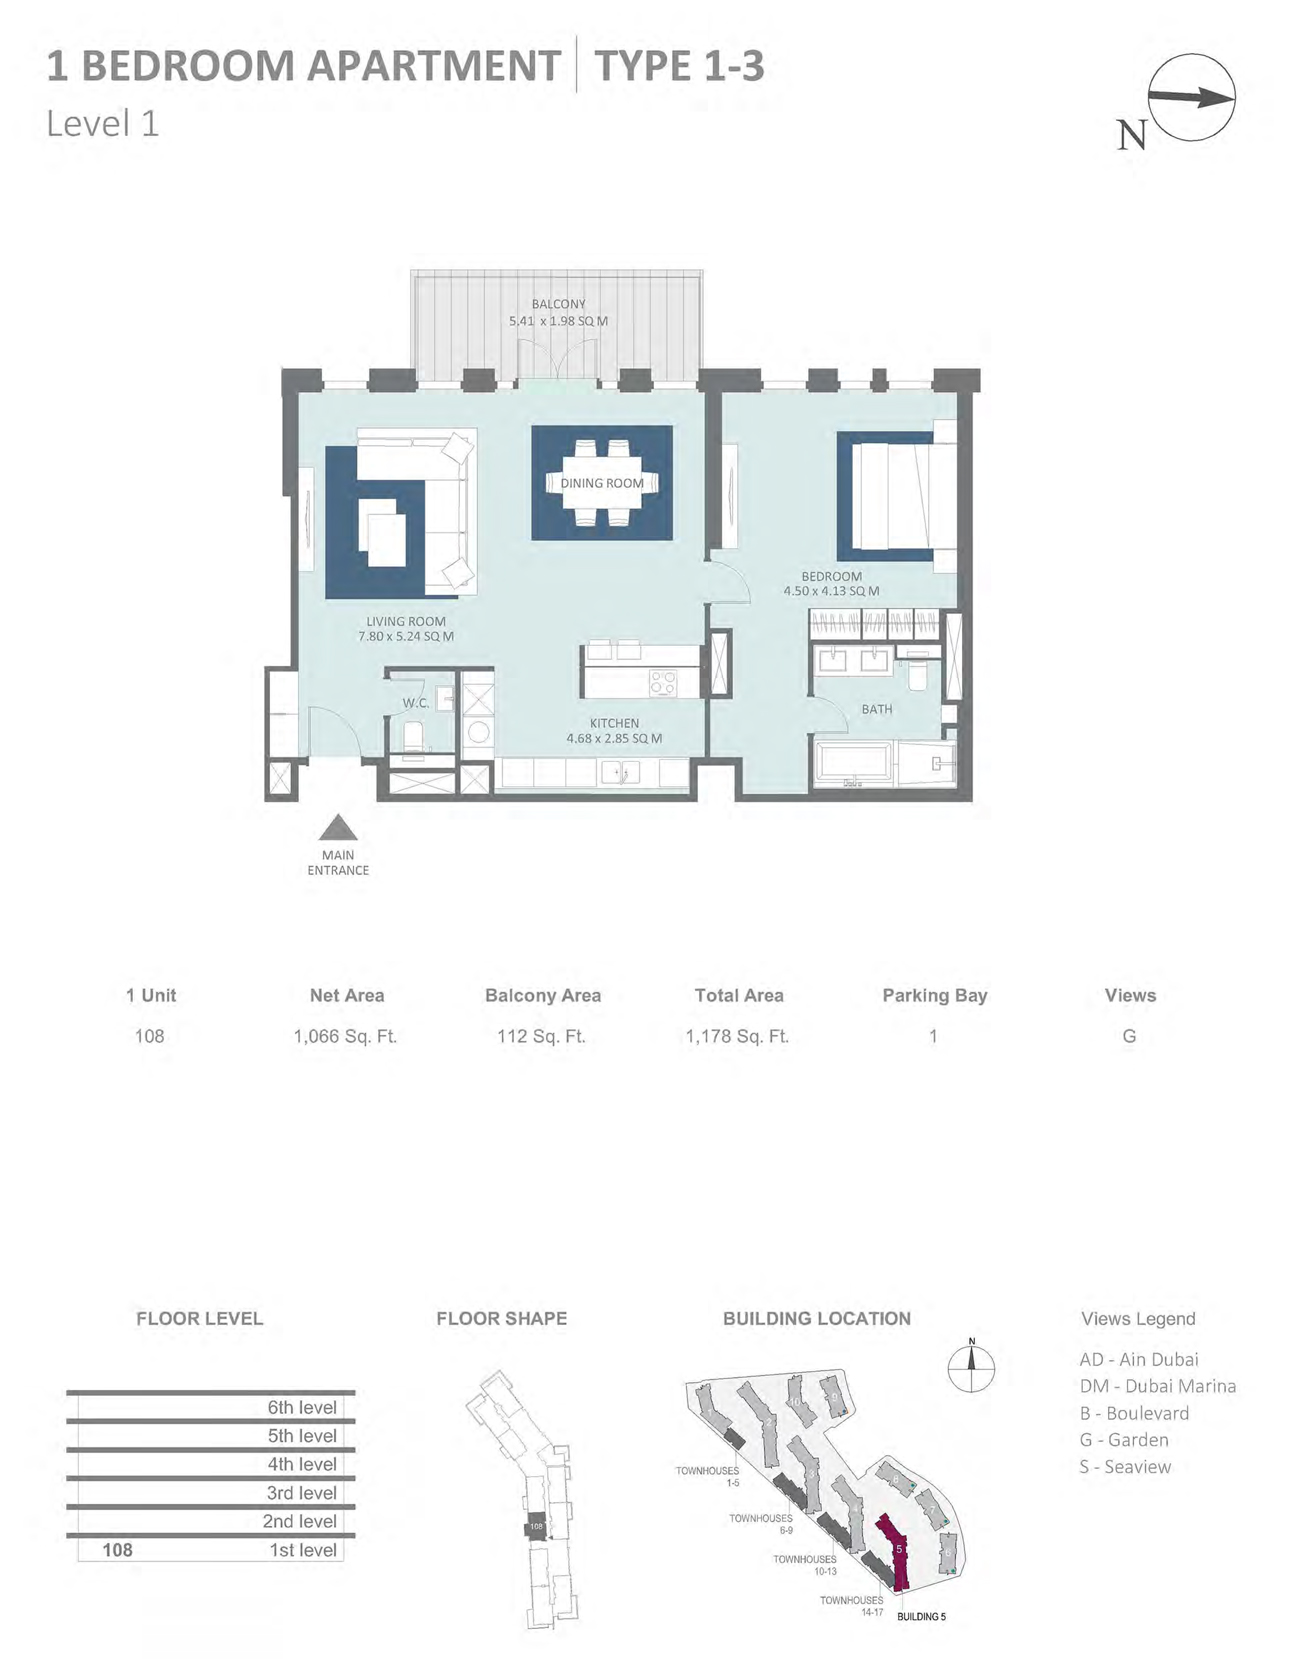 Building 5 - 1 Bedroom Type 1 - 3 Level 1 , Size 1066 sq ft